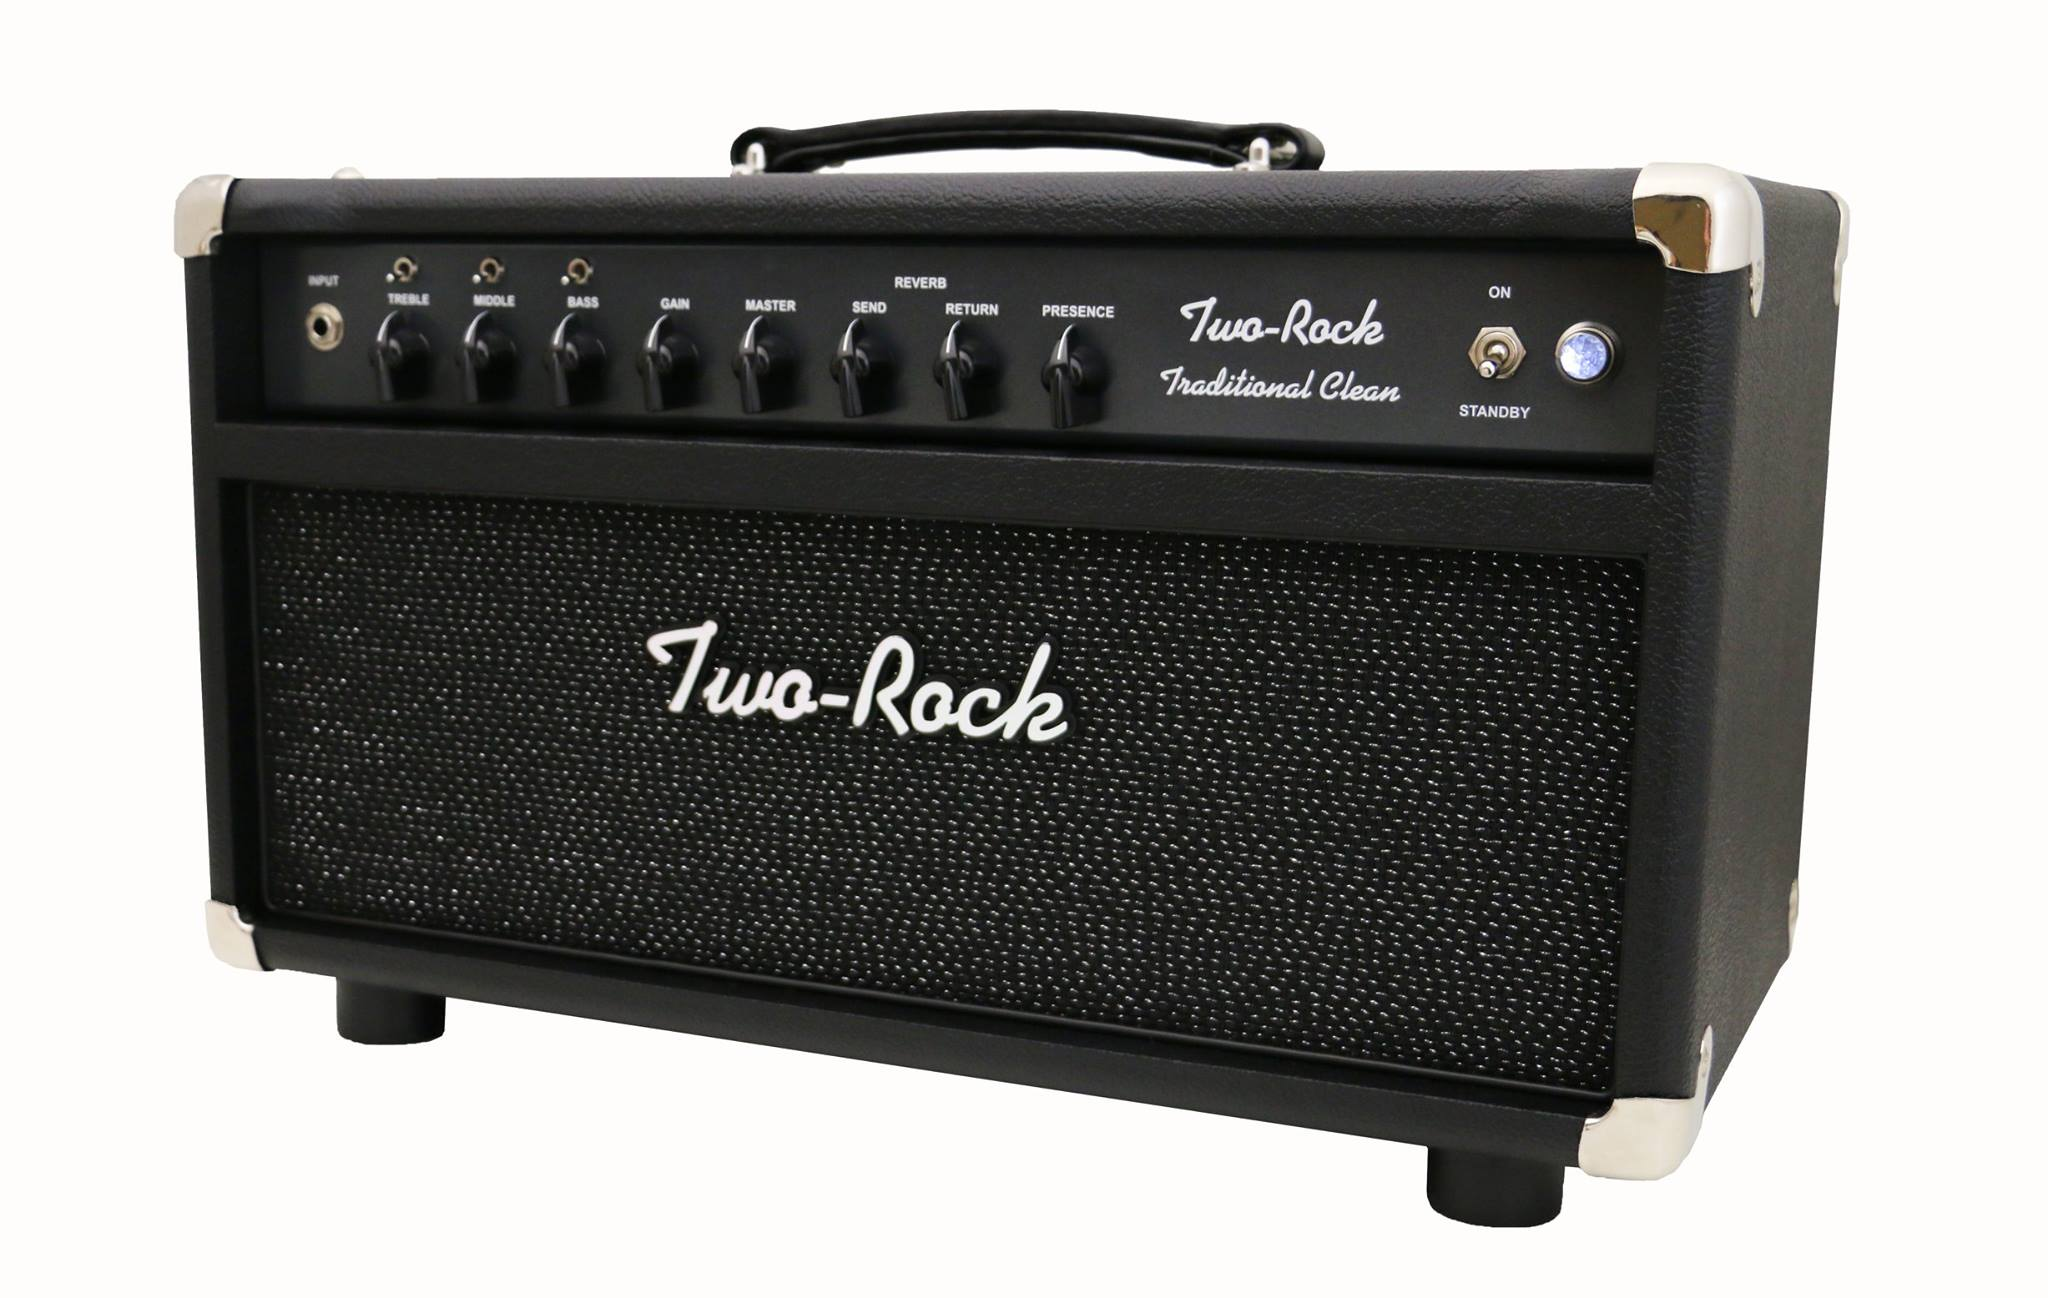 new amp from two rock 9to42. Black Bedroom Furniture Sets. Home Design Ideas